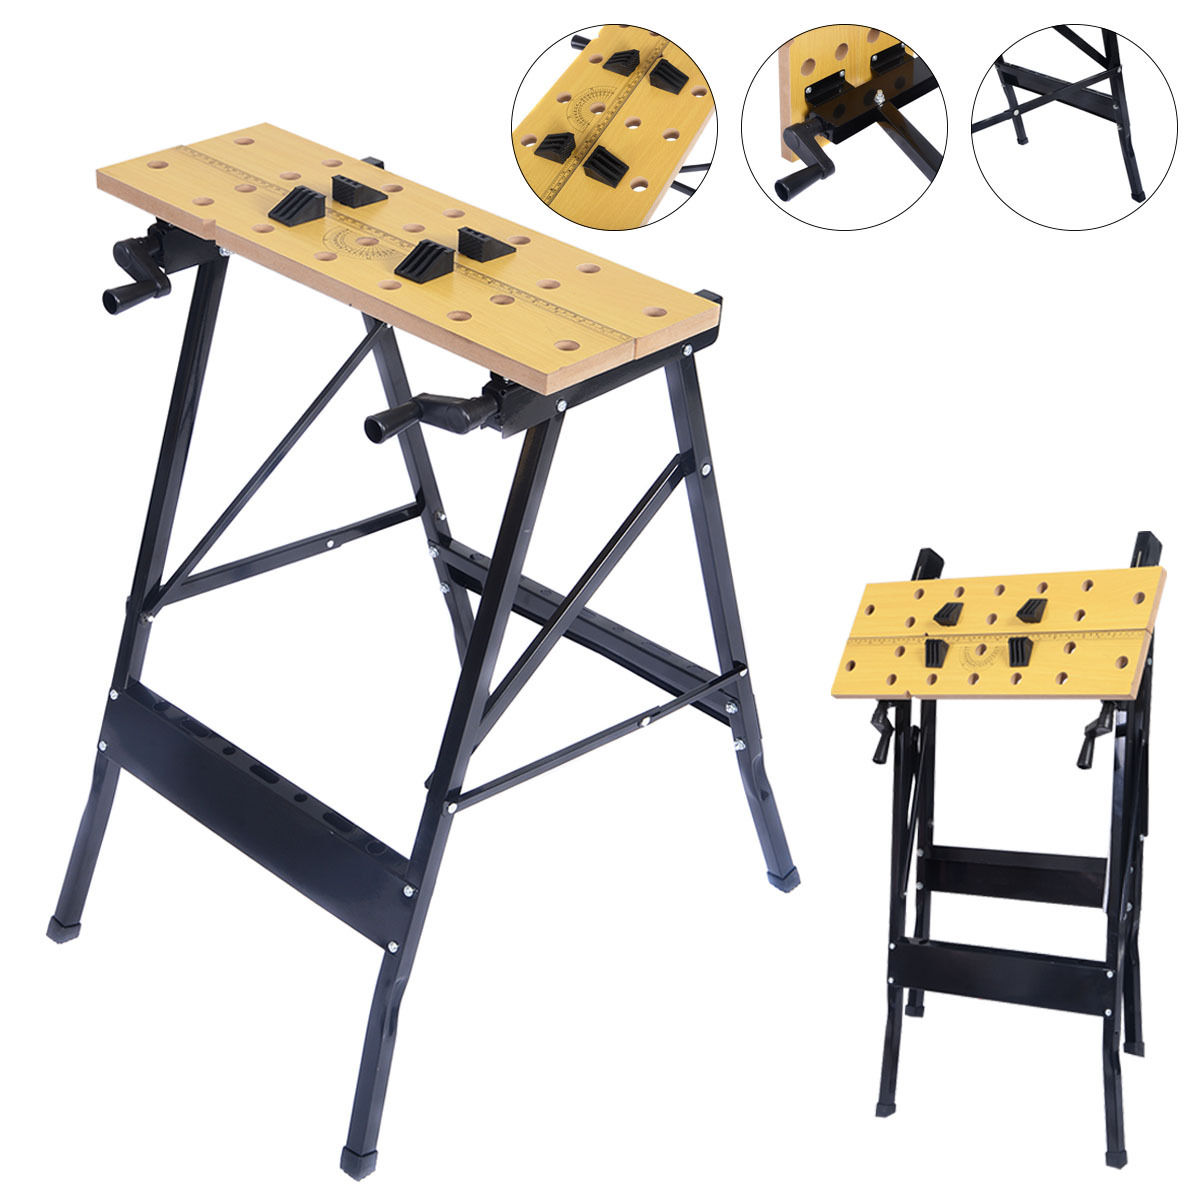 Costway Folding Work Bench Table Tool Garage Repair Workshop